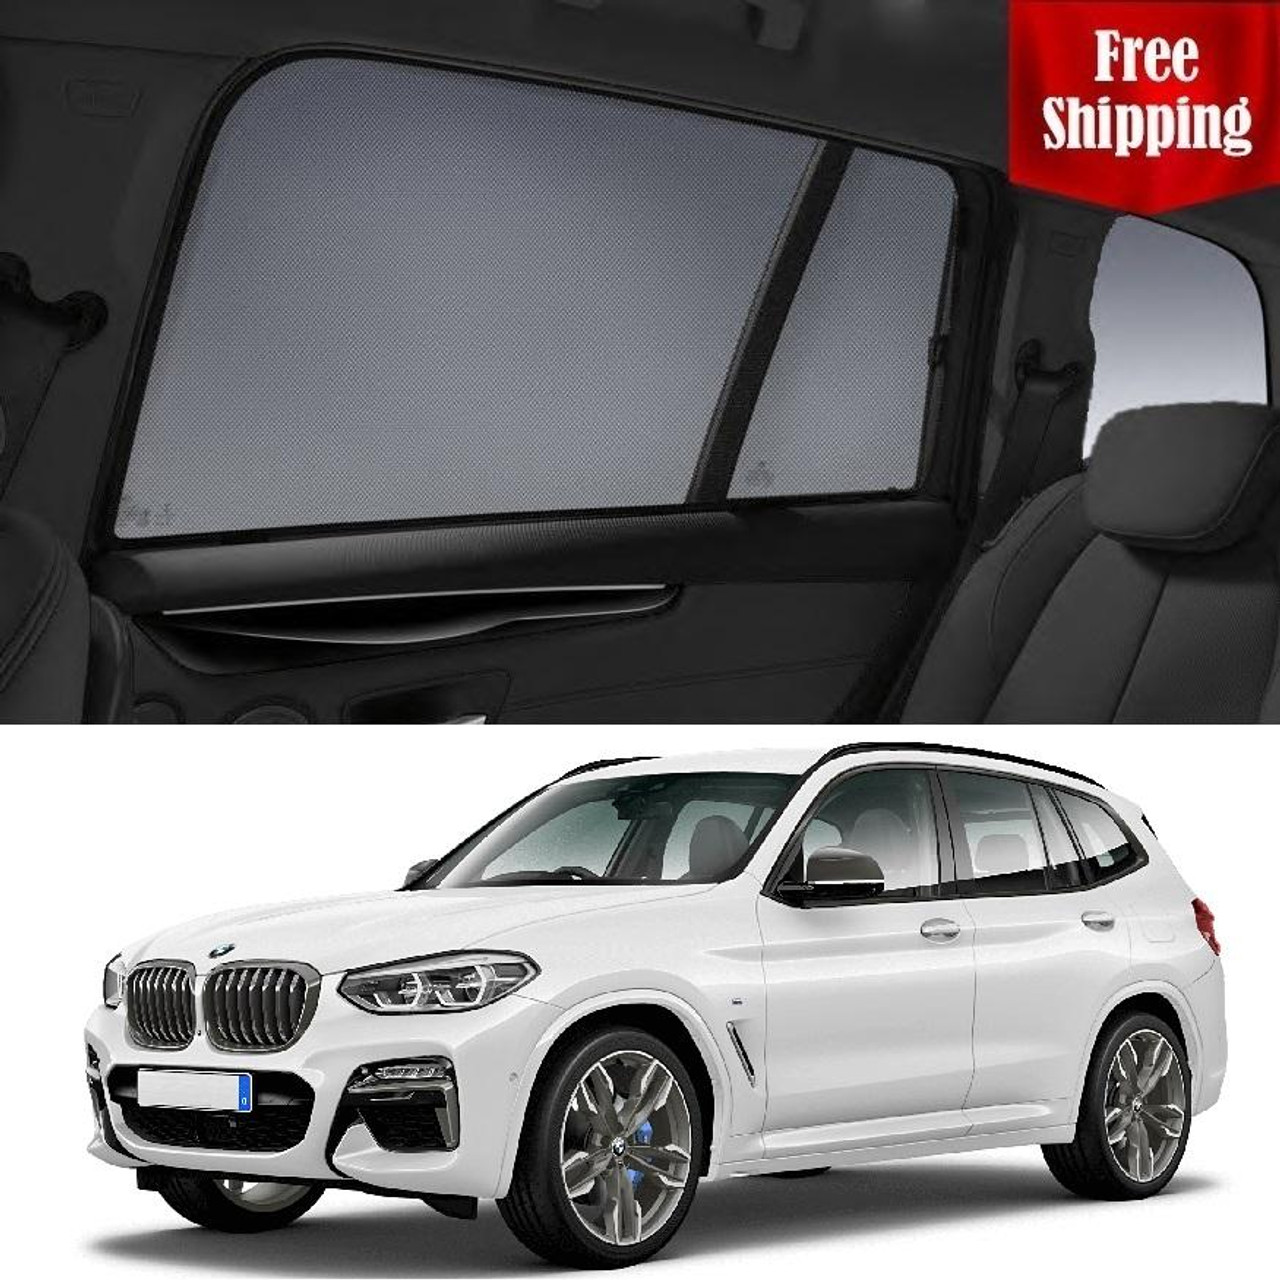 Bmw X3 2017 2019 G01 Magnetic Sun Shade Sun Blind